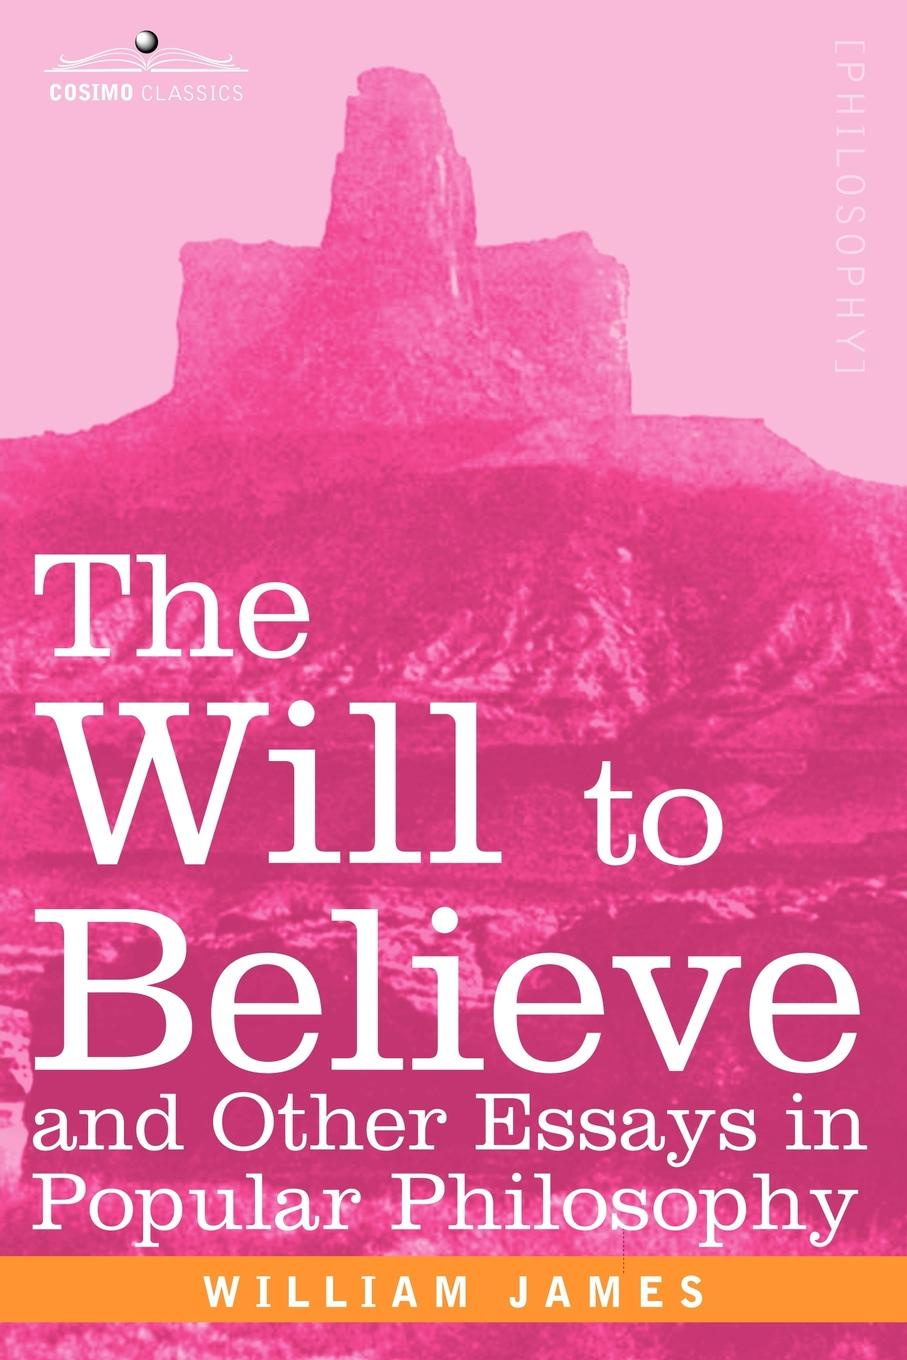 цена на William James The Will to Believe and Other Essays in Popular Philosophy